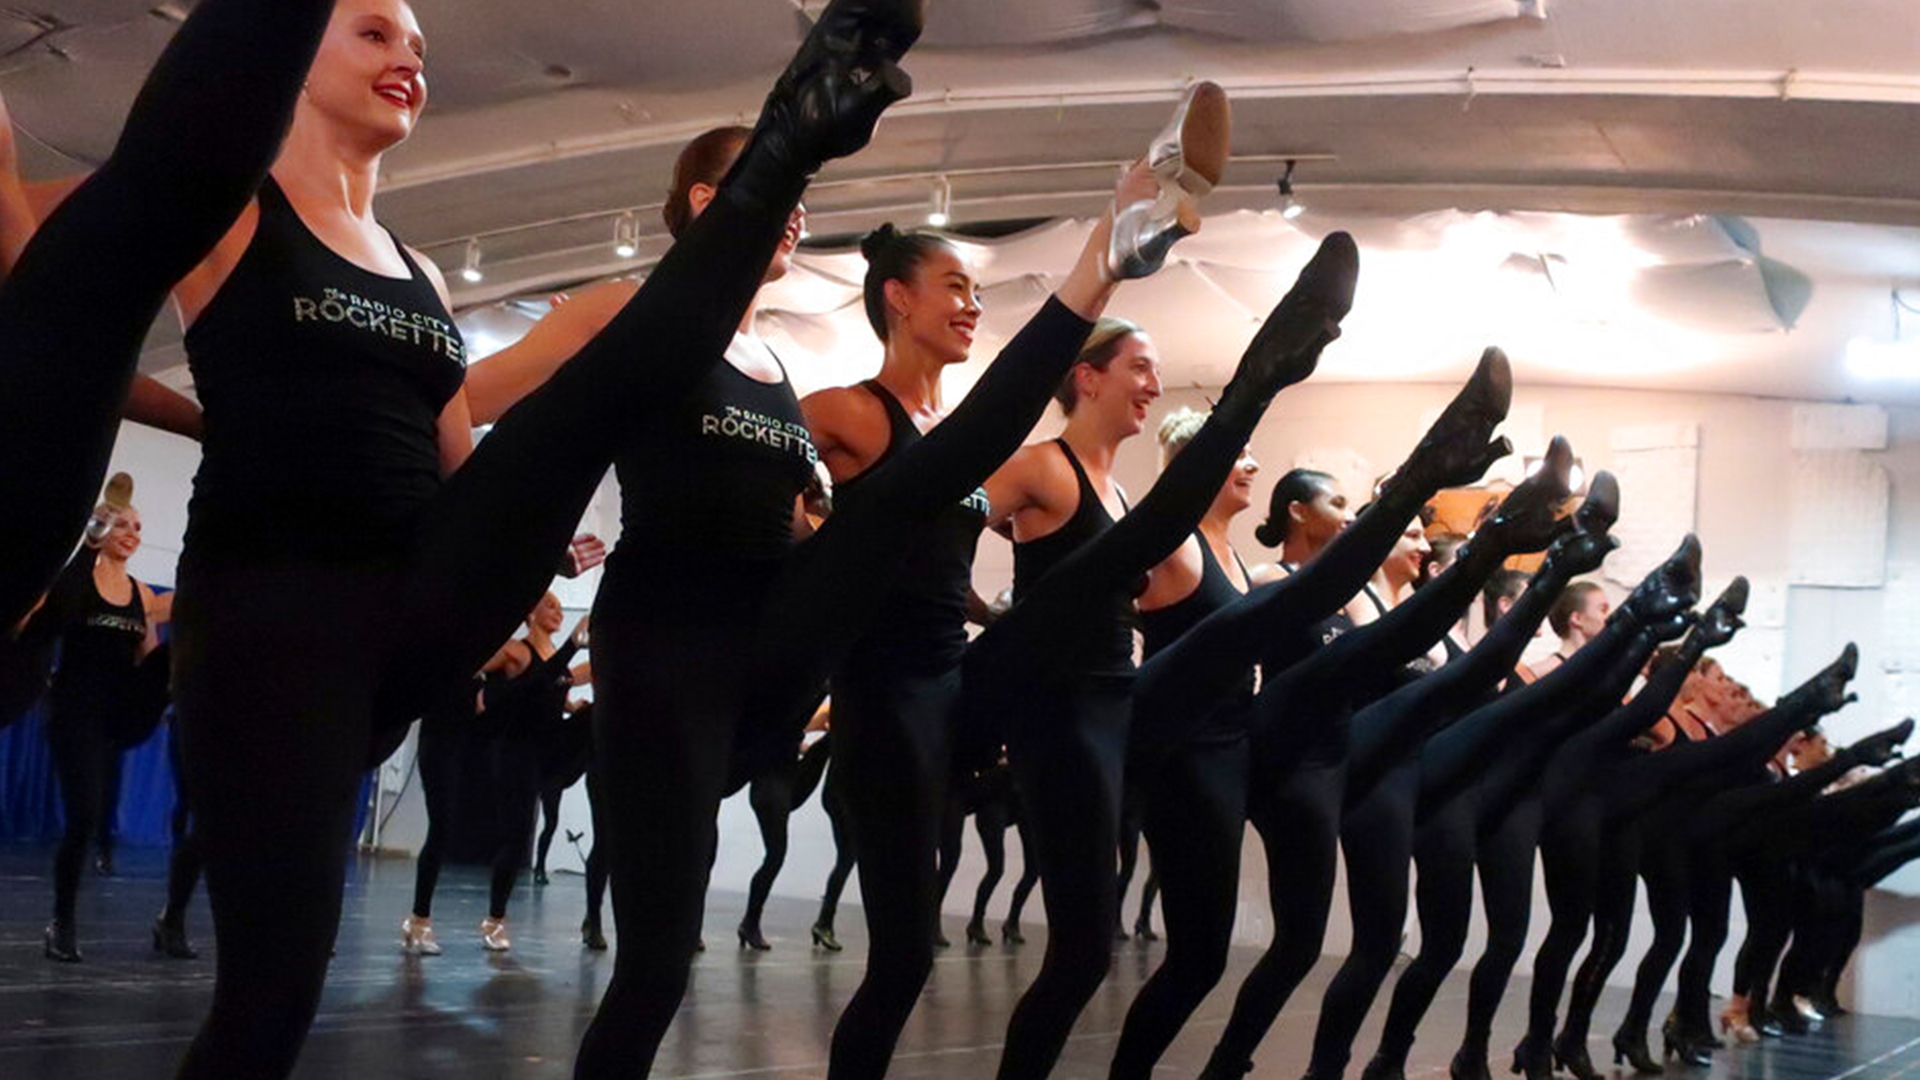 Rockettes 2020 Christmas Schedule The Rockettes' 2020 Christmas Spectacular canceled over COVID 19